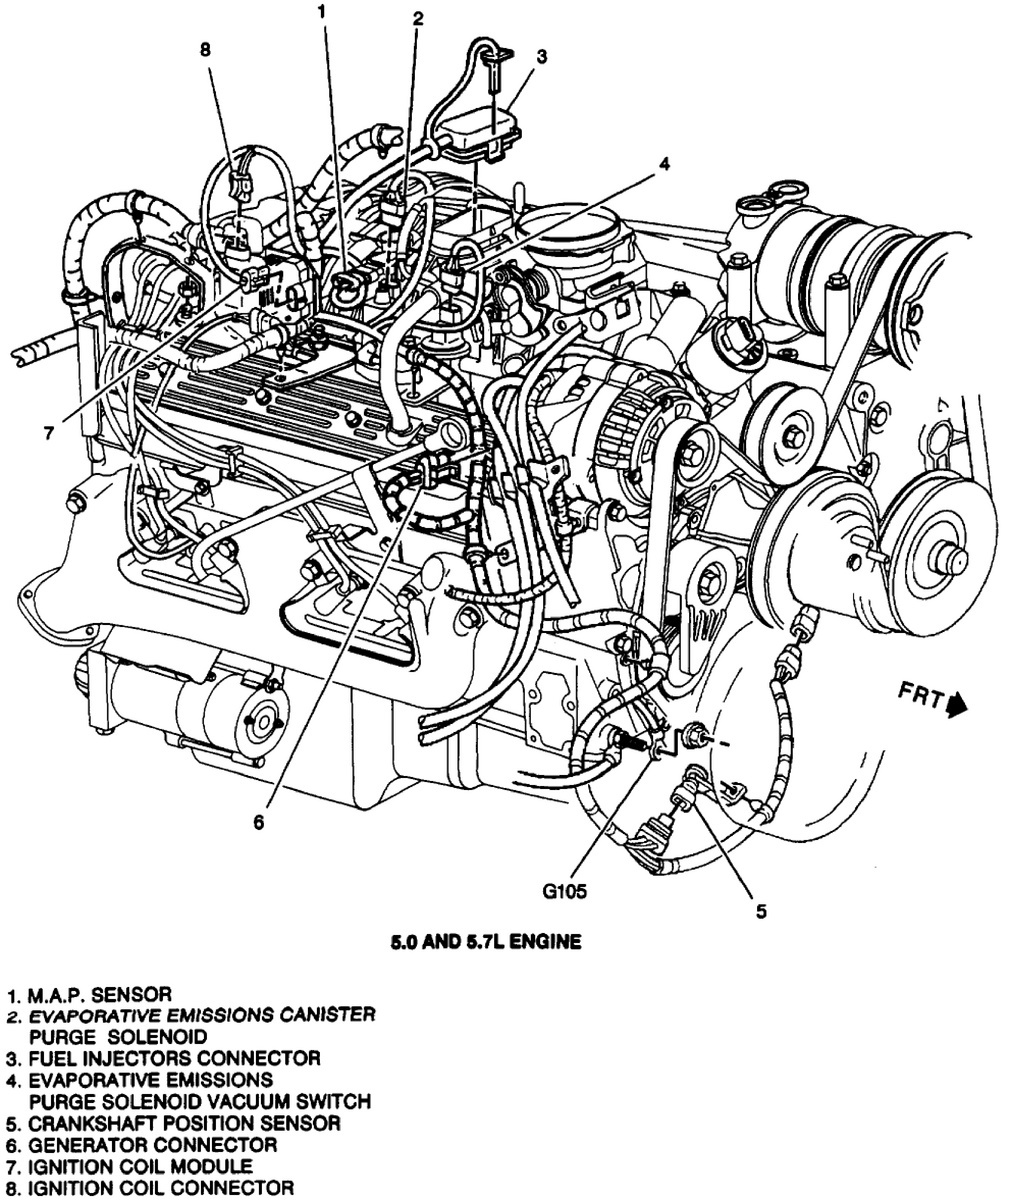 40E1B Gm 3 4 L Engine Diagram | Digital Resources on 2006 chevy impala door diagram, gm 3 4 engine block diagram, 2004 chevy impala transmission diagram, gm engine parts diagram, gm 5.7 engine diagram, 1995 lumina motor diagram, 4t60 transmission diagram, pontiac 3.1 engine diagram, 2001 3400 belt diagram, 3 1 l diagram, 4.3 liter engine diagram, cat 3126 parts diagram, gm 3400 engine diagram, chevy 3.1 v6 diagram, gm 3800 v6 parts diagram, gm power steering diagram, 3.1 liter v6, 3400 v6 coolant pump diagram, 1l 3 motor starter wiring diagram, pontiac grand prix motor diagram,